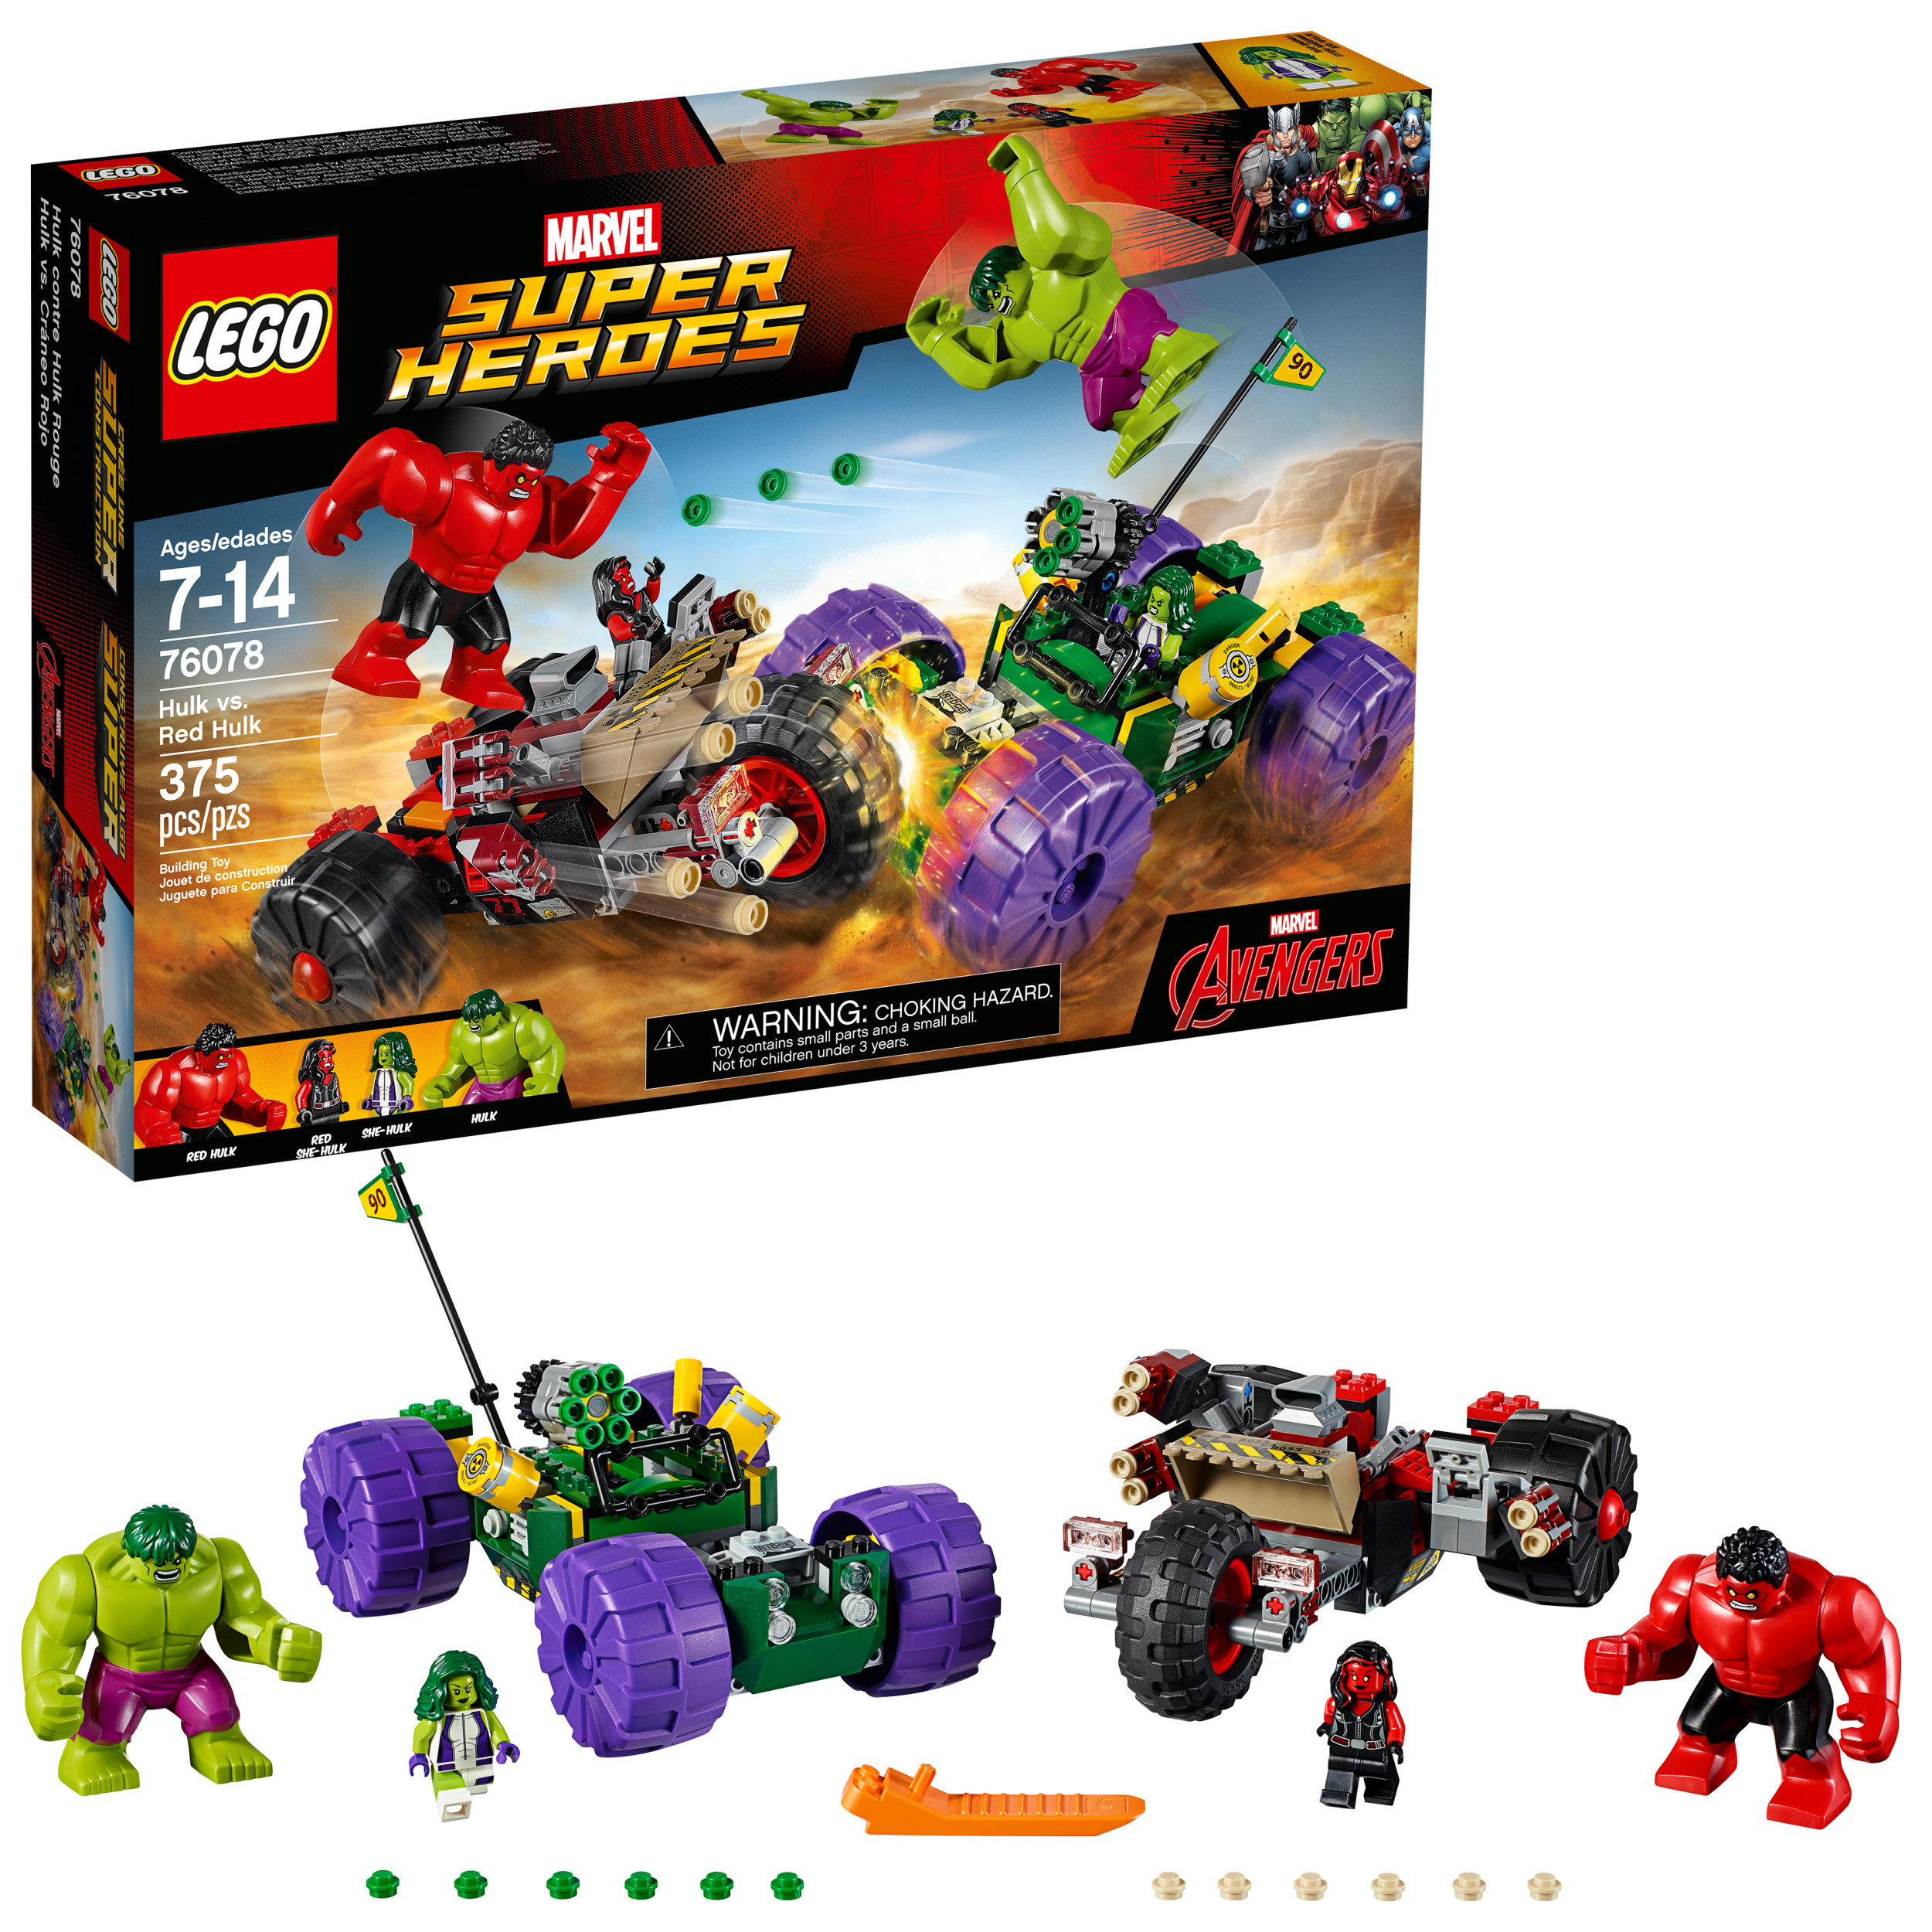 LEGO Red Hulk vs Hulk Set